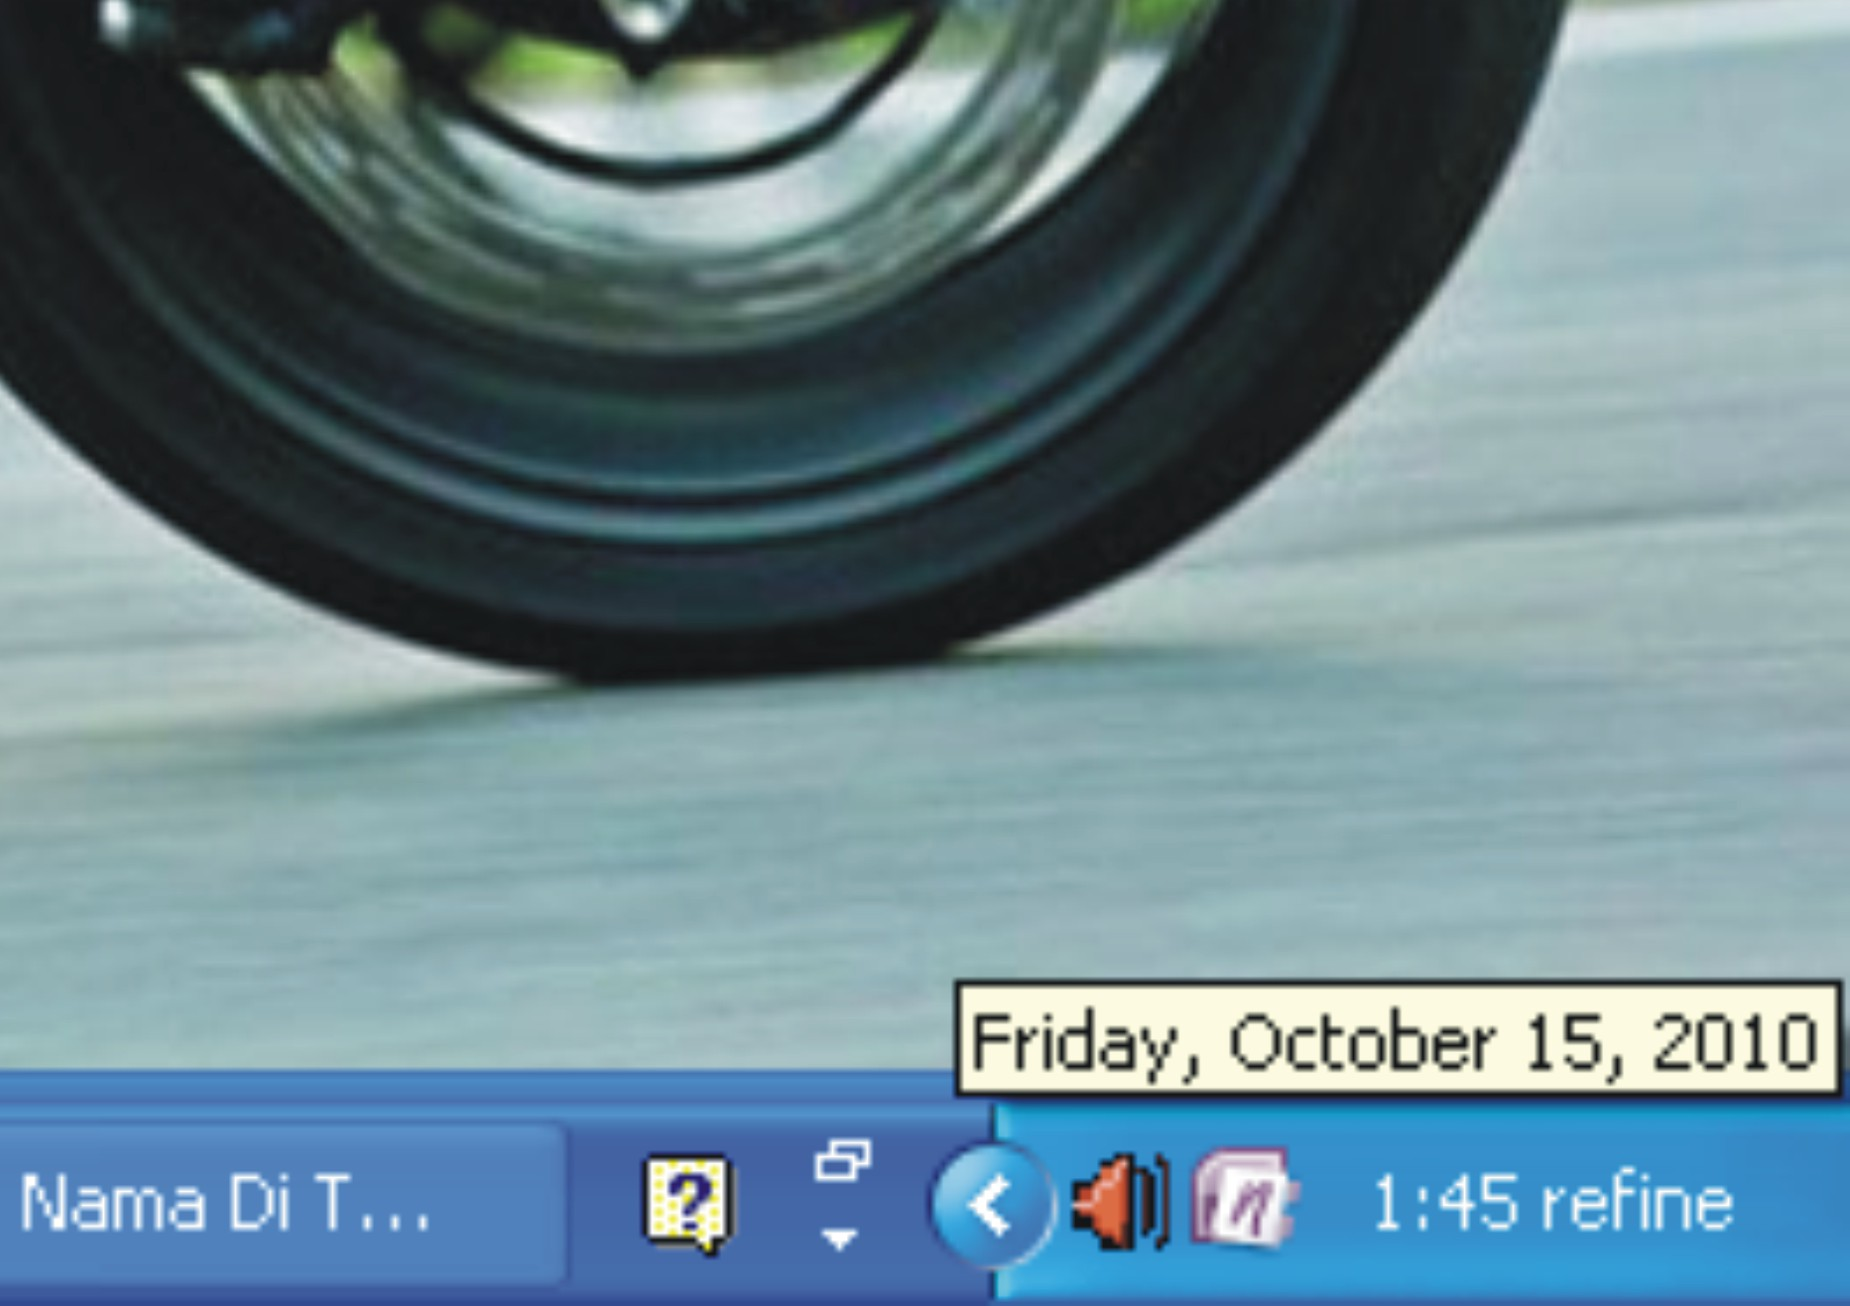 Menulis Nama Di Taskbar Windows XP R3fin3